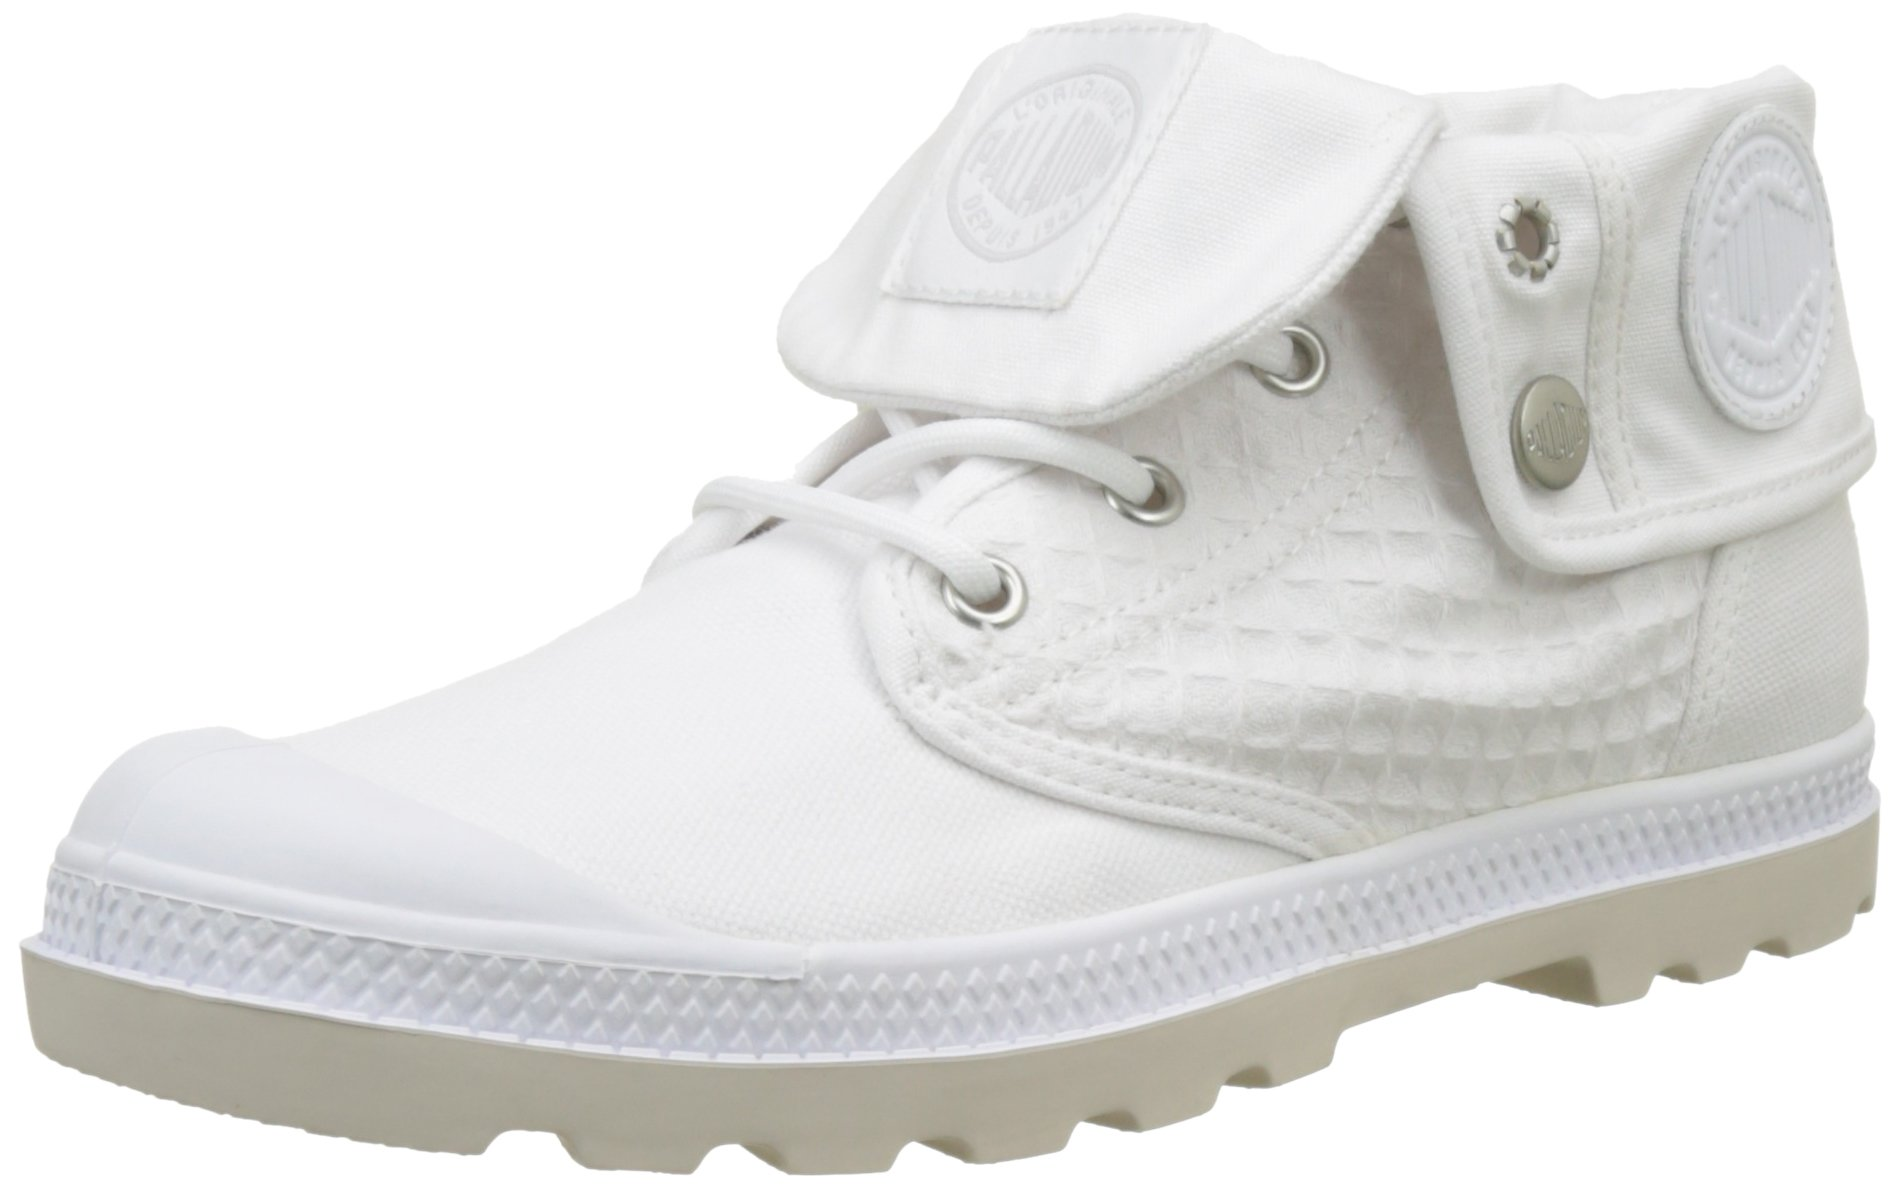 FemmeBlancwhite Palladium moonbeam40 LpSneakers Eu Baggy Basses Low ZiulPwOXkT